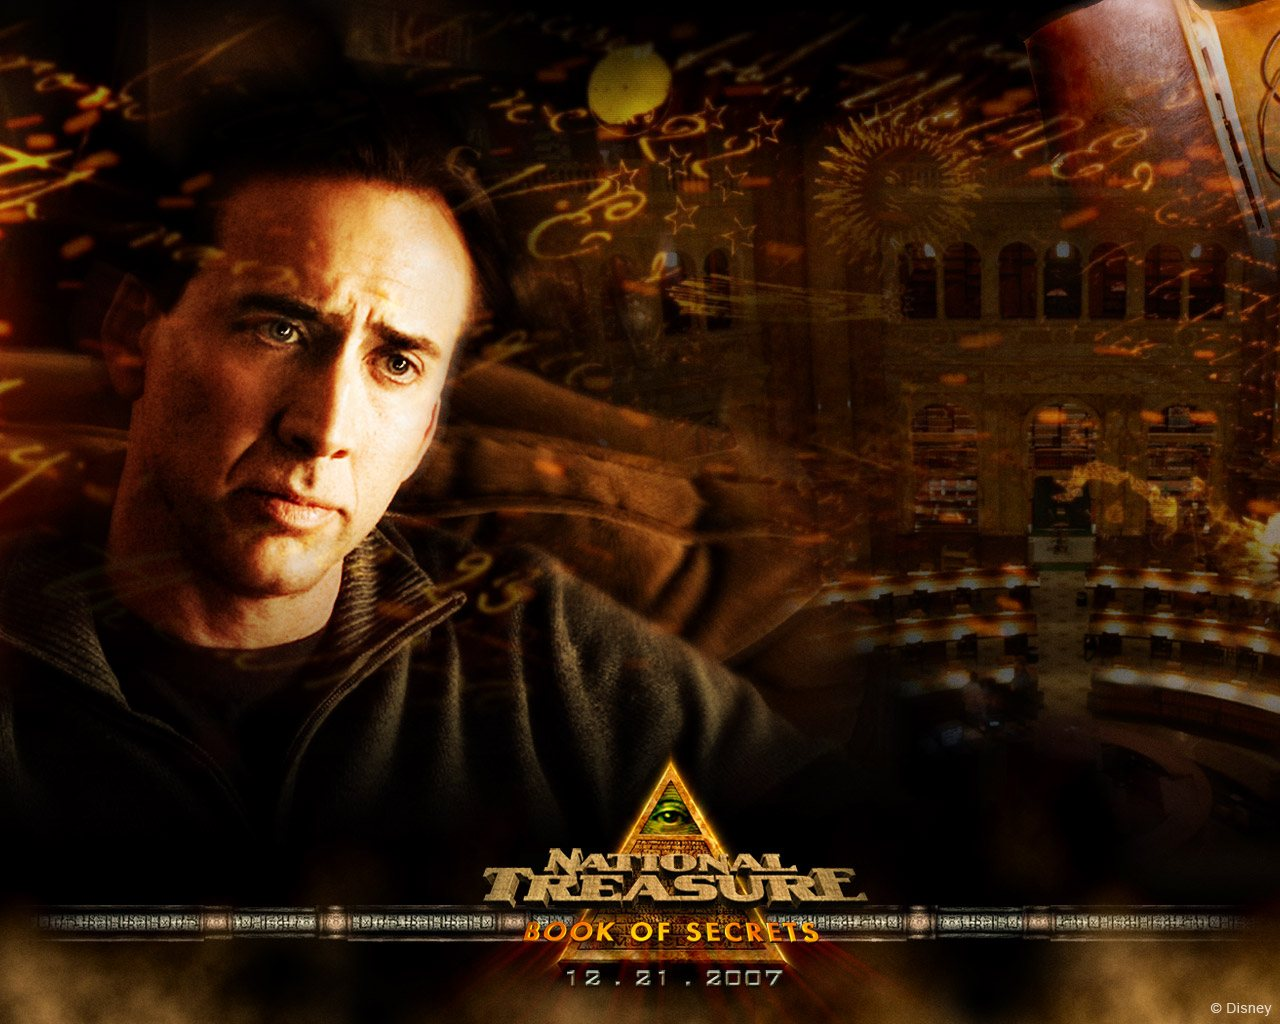 National Treasure: Book Of Secrets Backgrounds, Compatible - PC, Mobile, Gadgets| 1280x1024 px